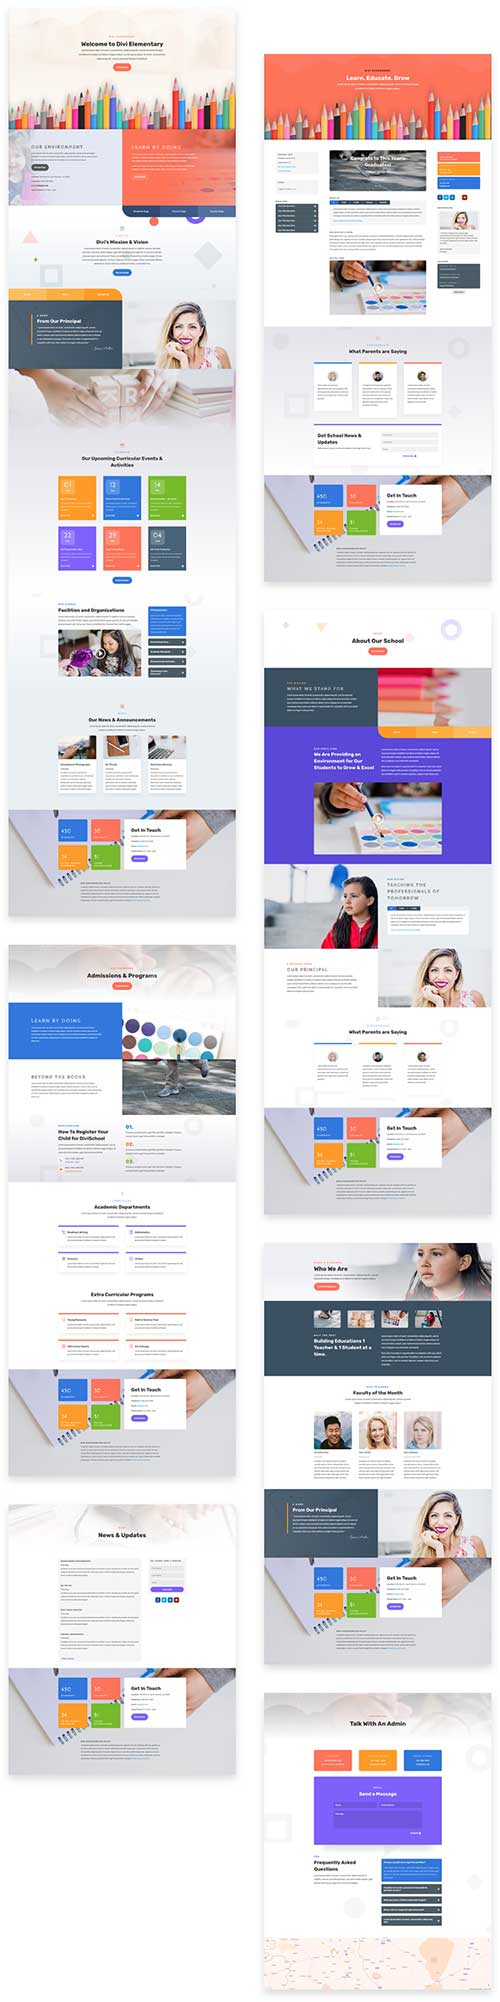 divi layout pack elementary school